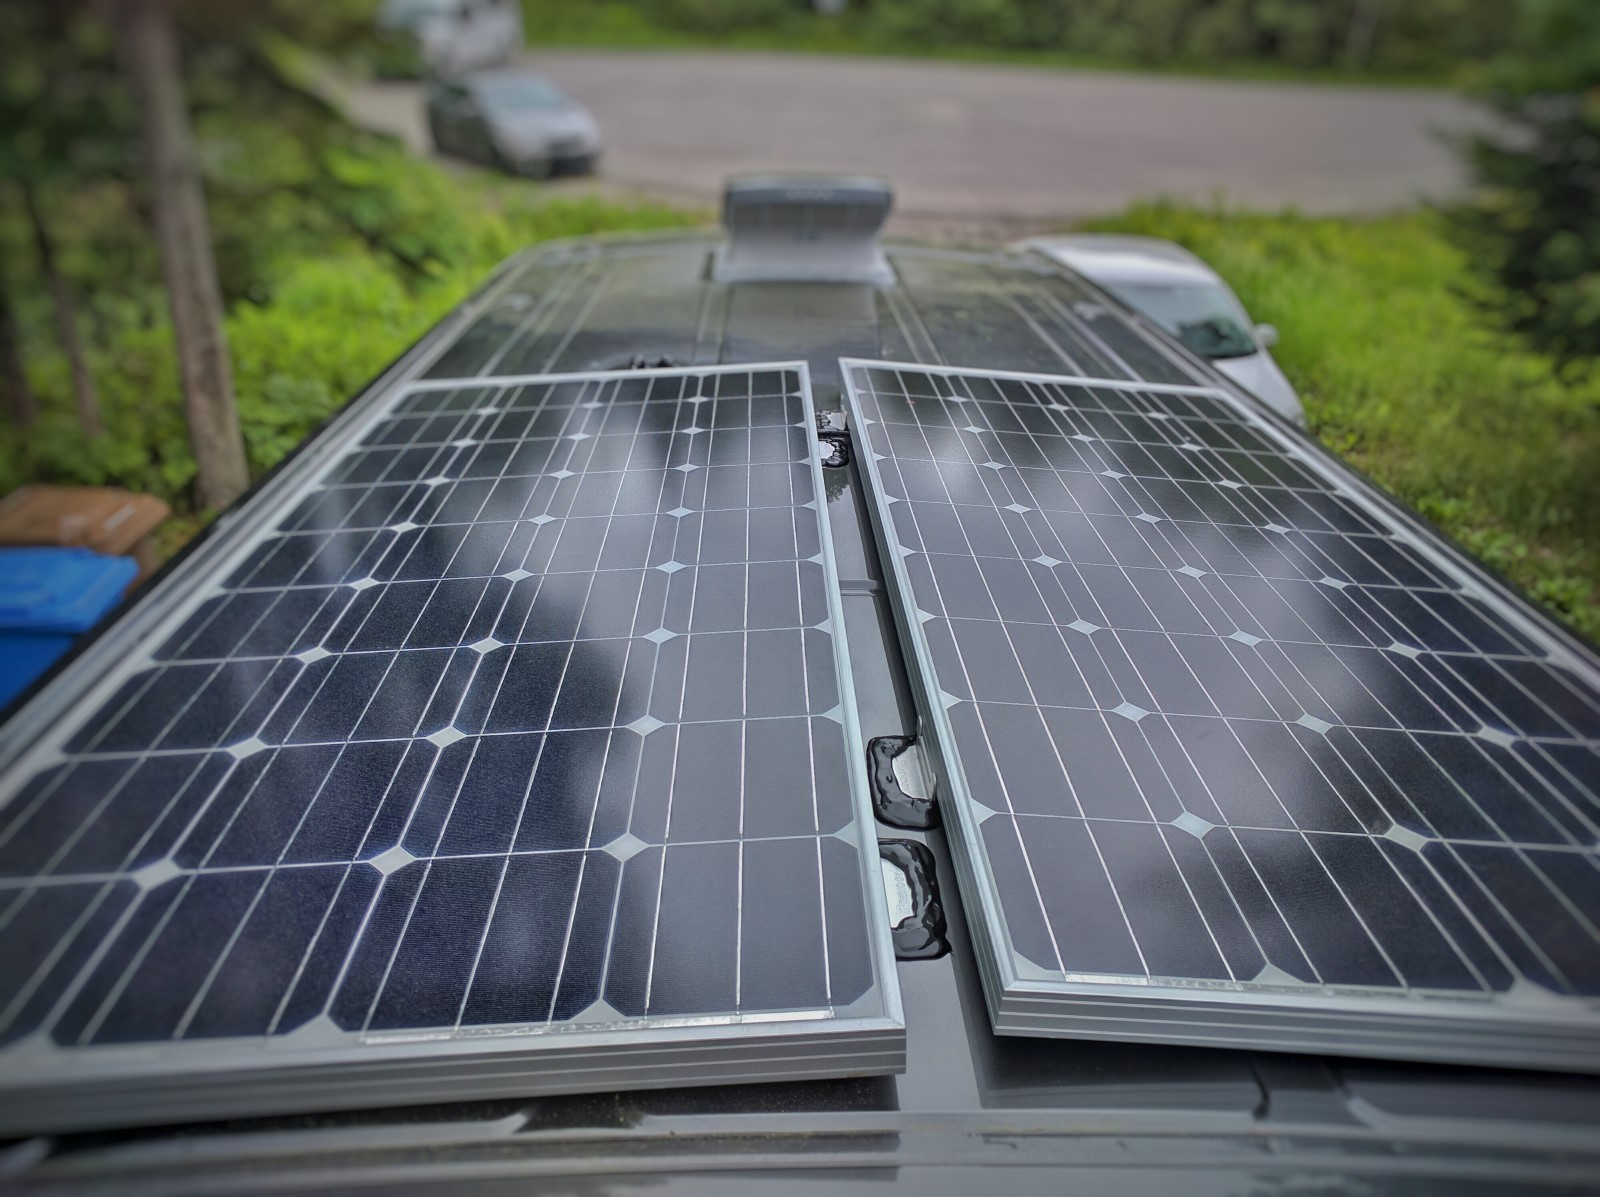 medium resolution of how to install solar panels on a camper van conversion with 3m vhb tape no holes